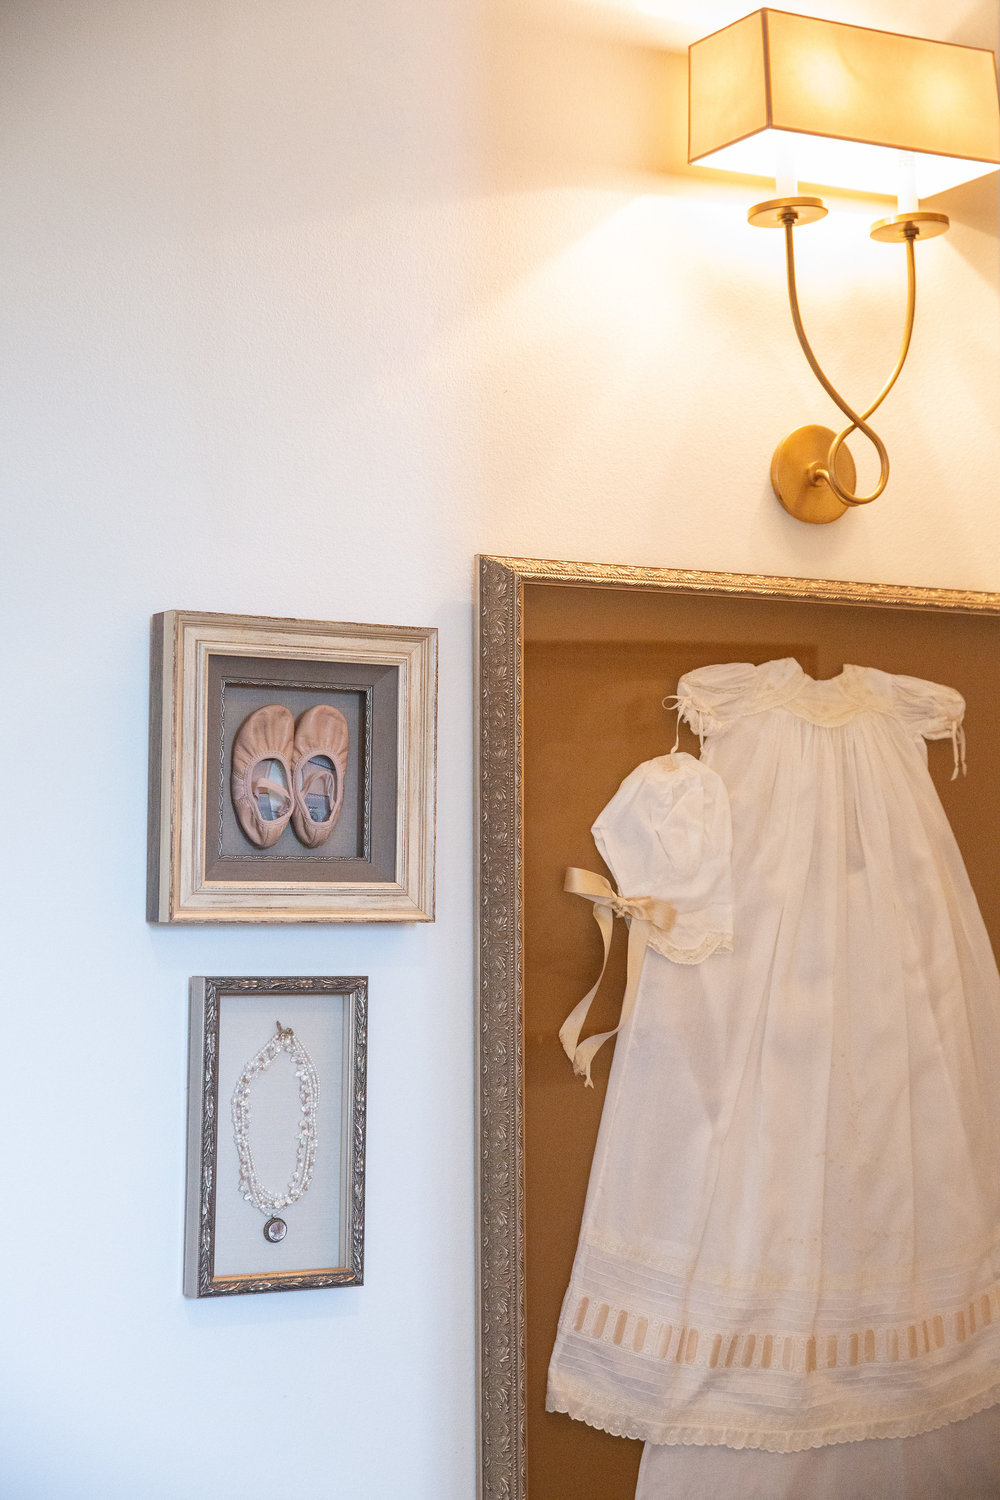 A family christening gown makes for a unique and personal display.